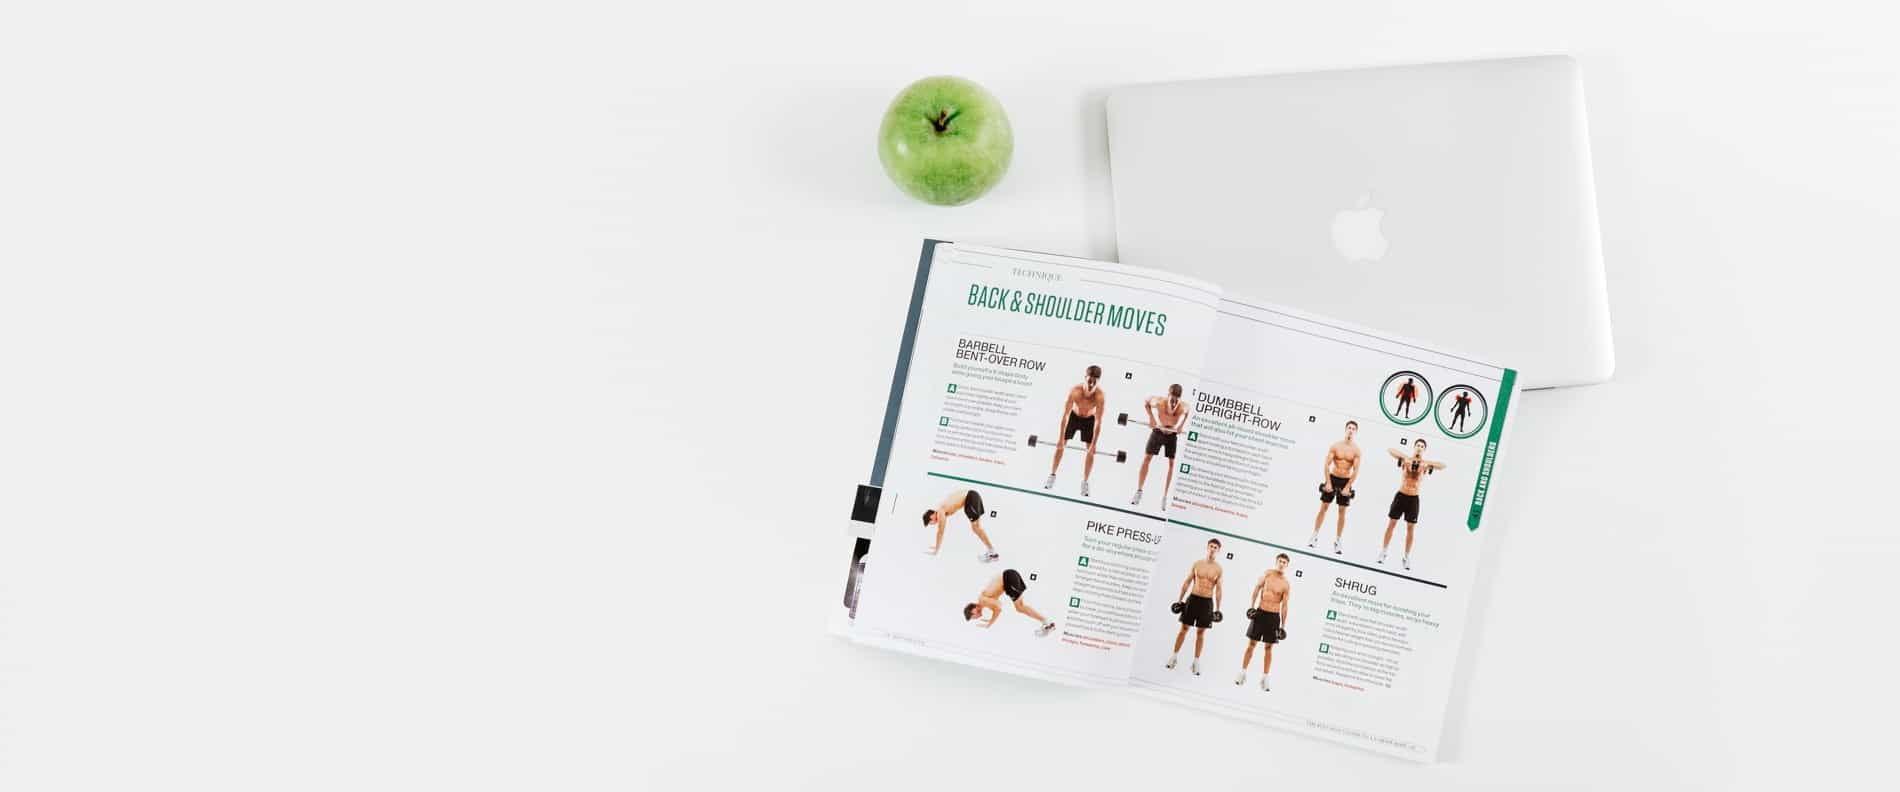 Check out more books to renew yourself physically on our Books on Fitness and Running section, which are exclusively selected for executives who want to take fitness to the new level.